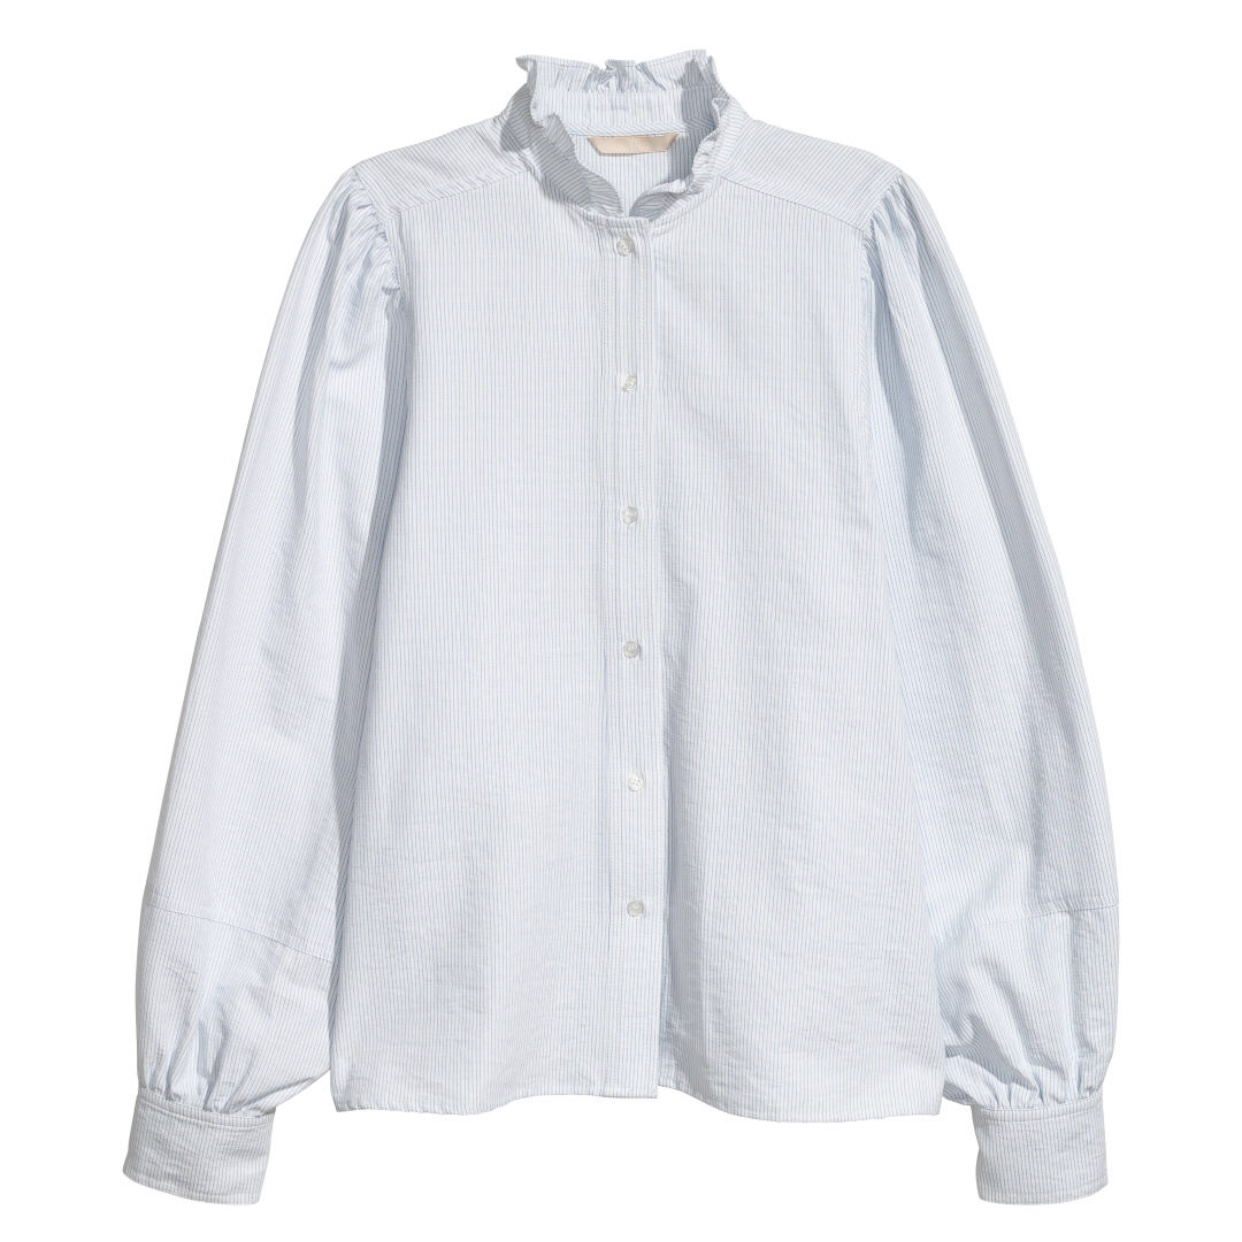 H&M Blouse with Ruffled Collar